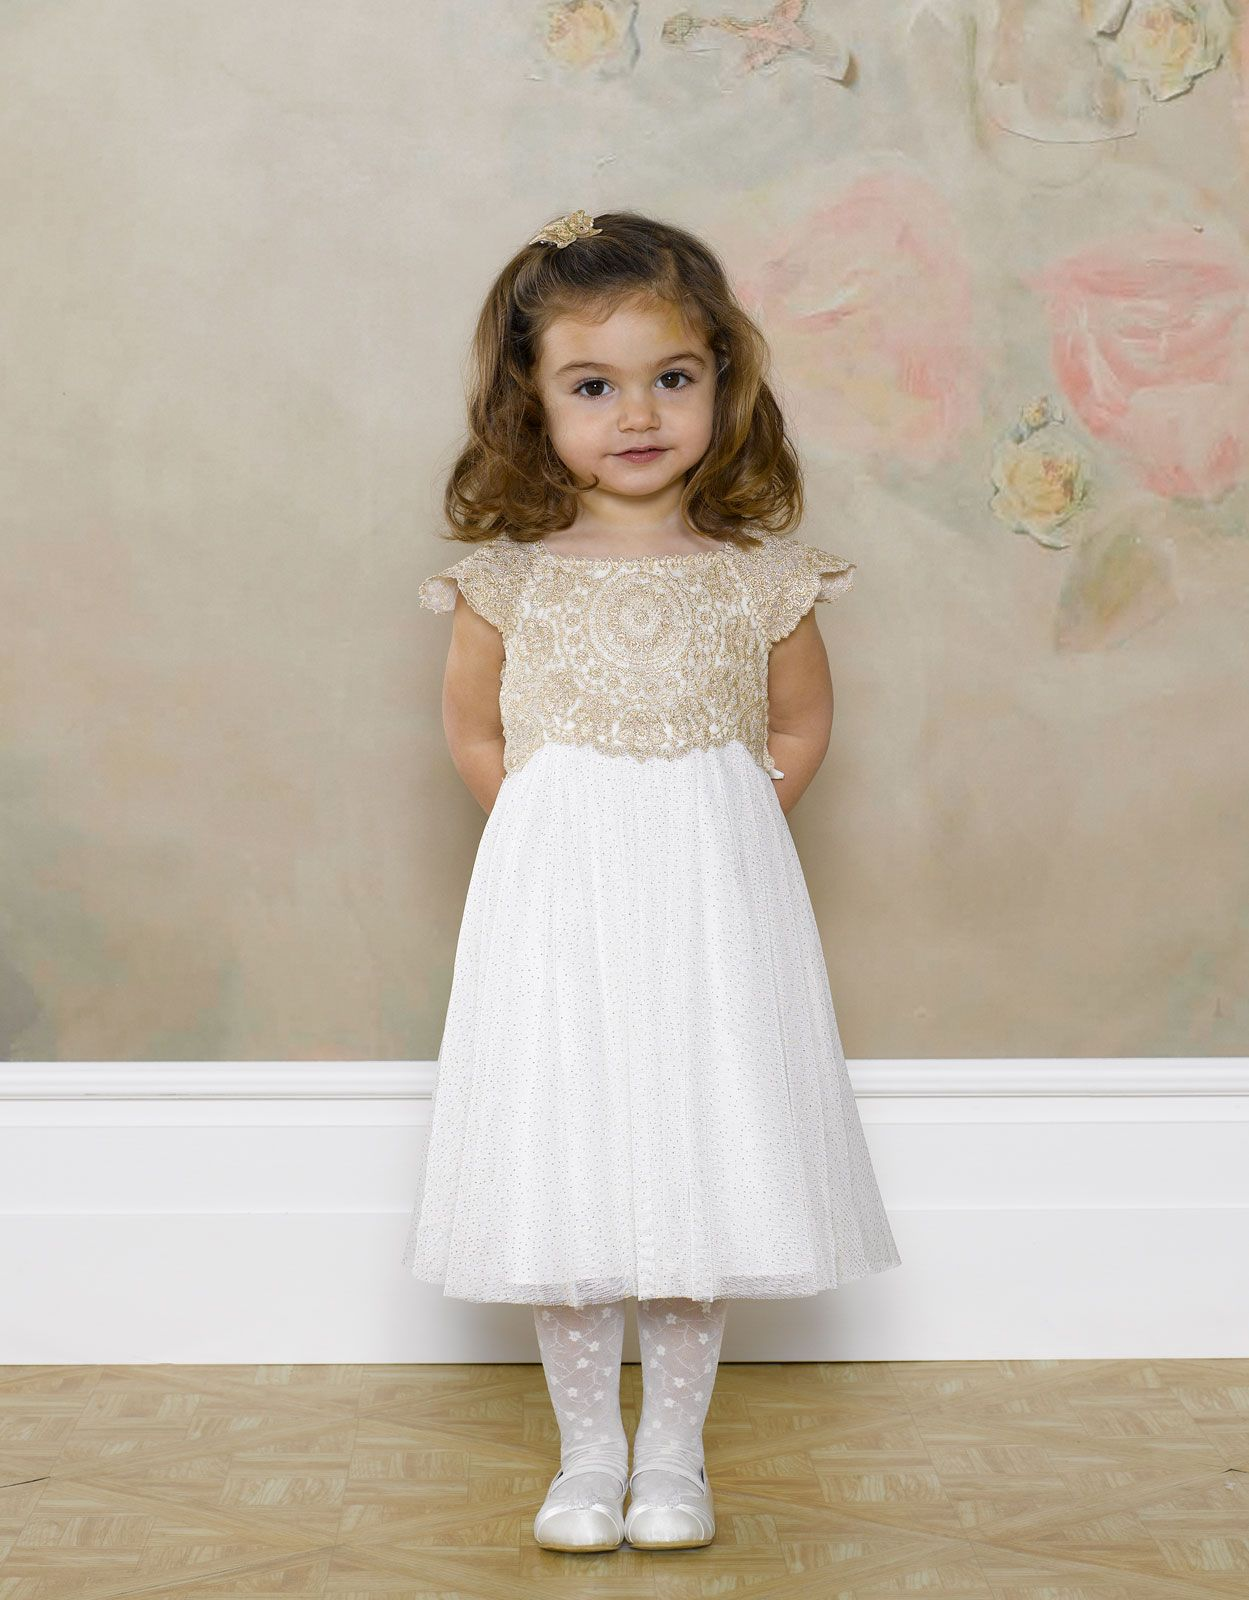 bfe0c7e2 Estelle dress in gold for baby girl's naming ceremony from Monsoon ...